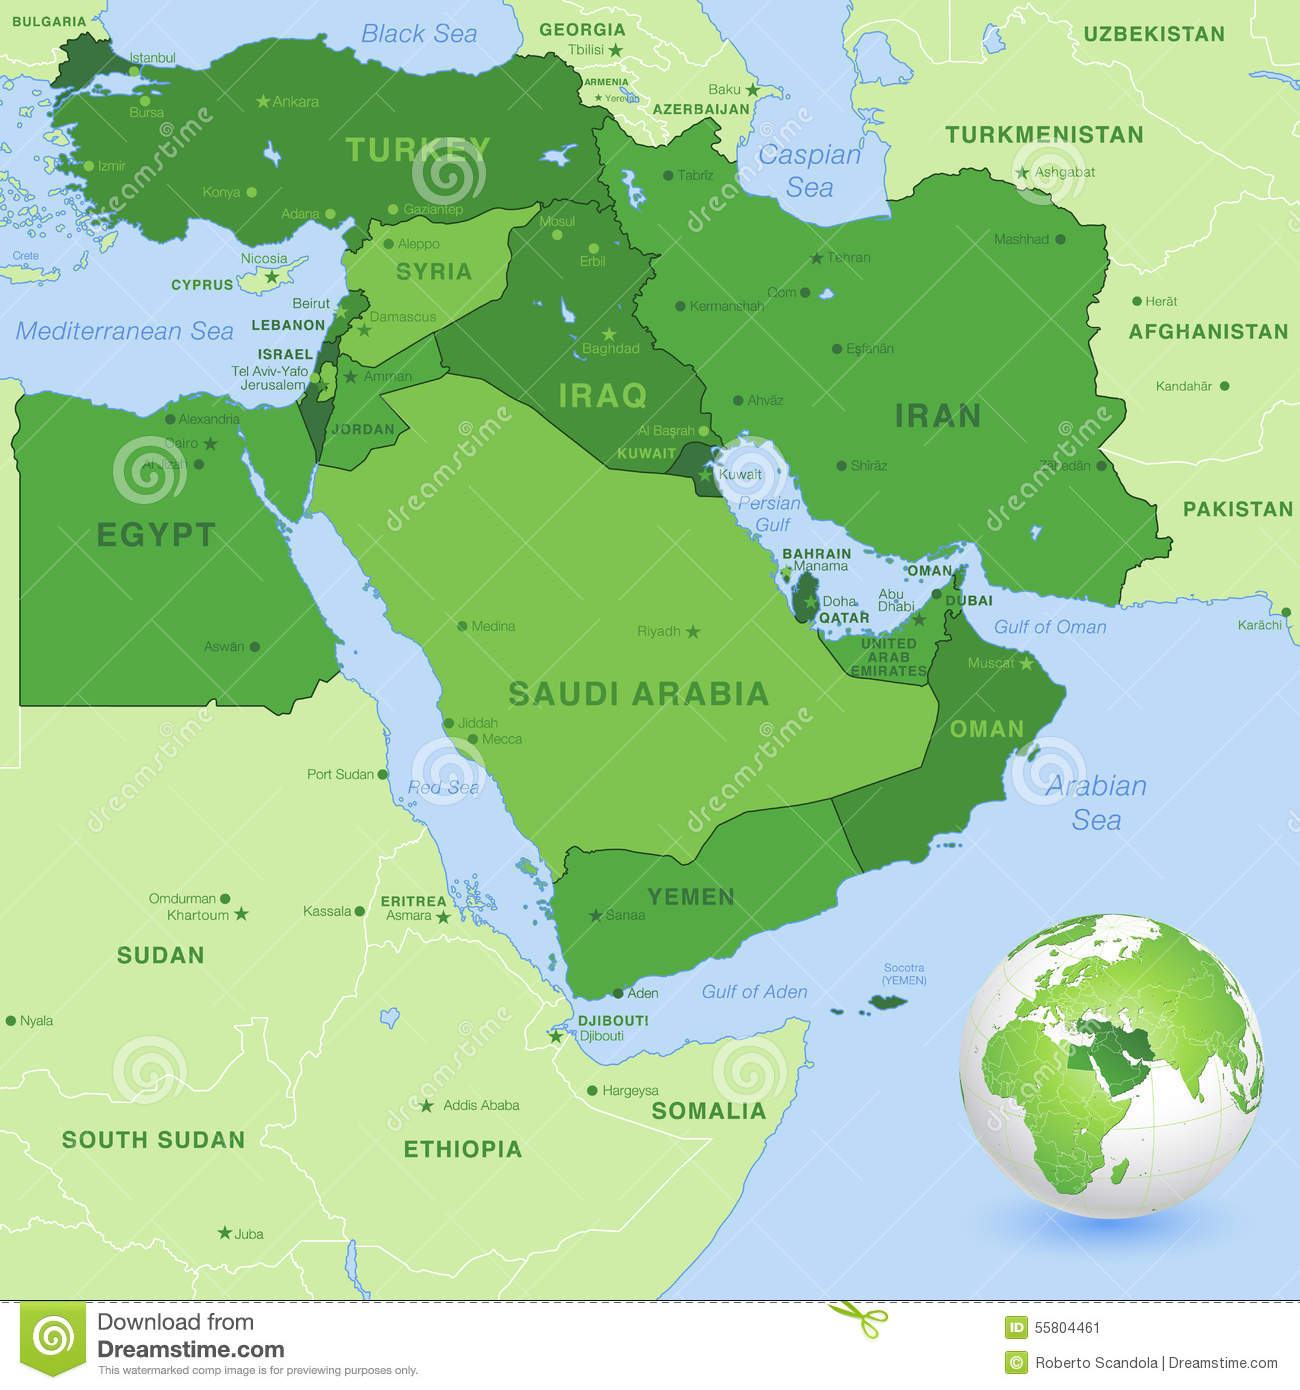 ... map of the Middle East Zone, with a 3D Globe centered on Middle East